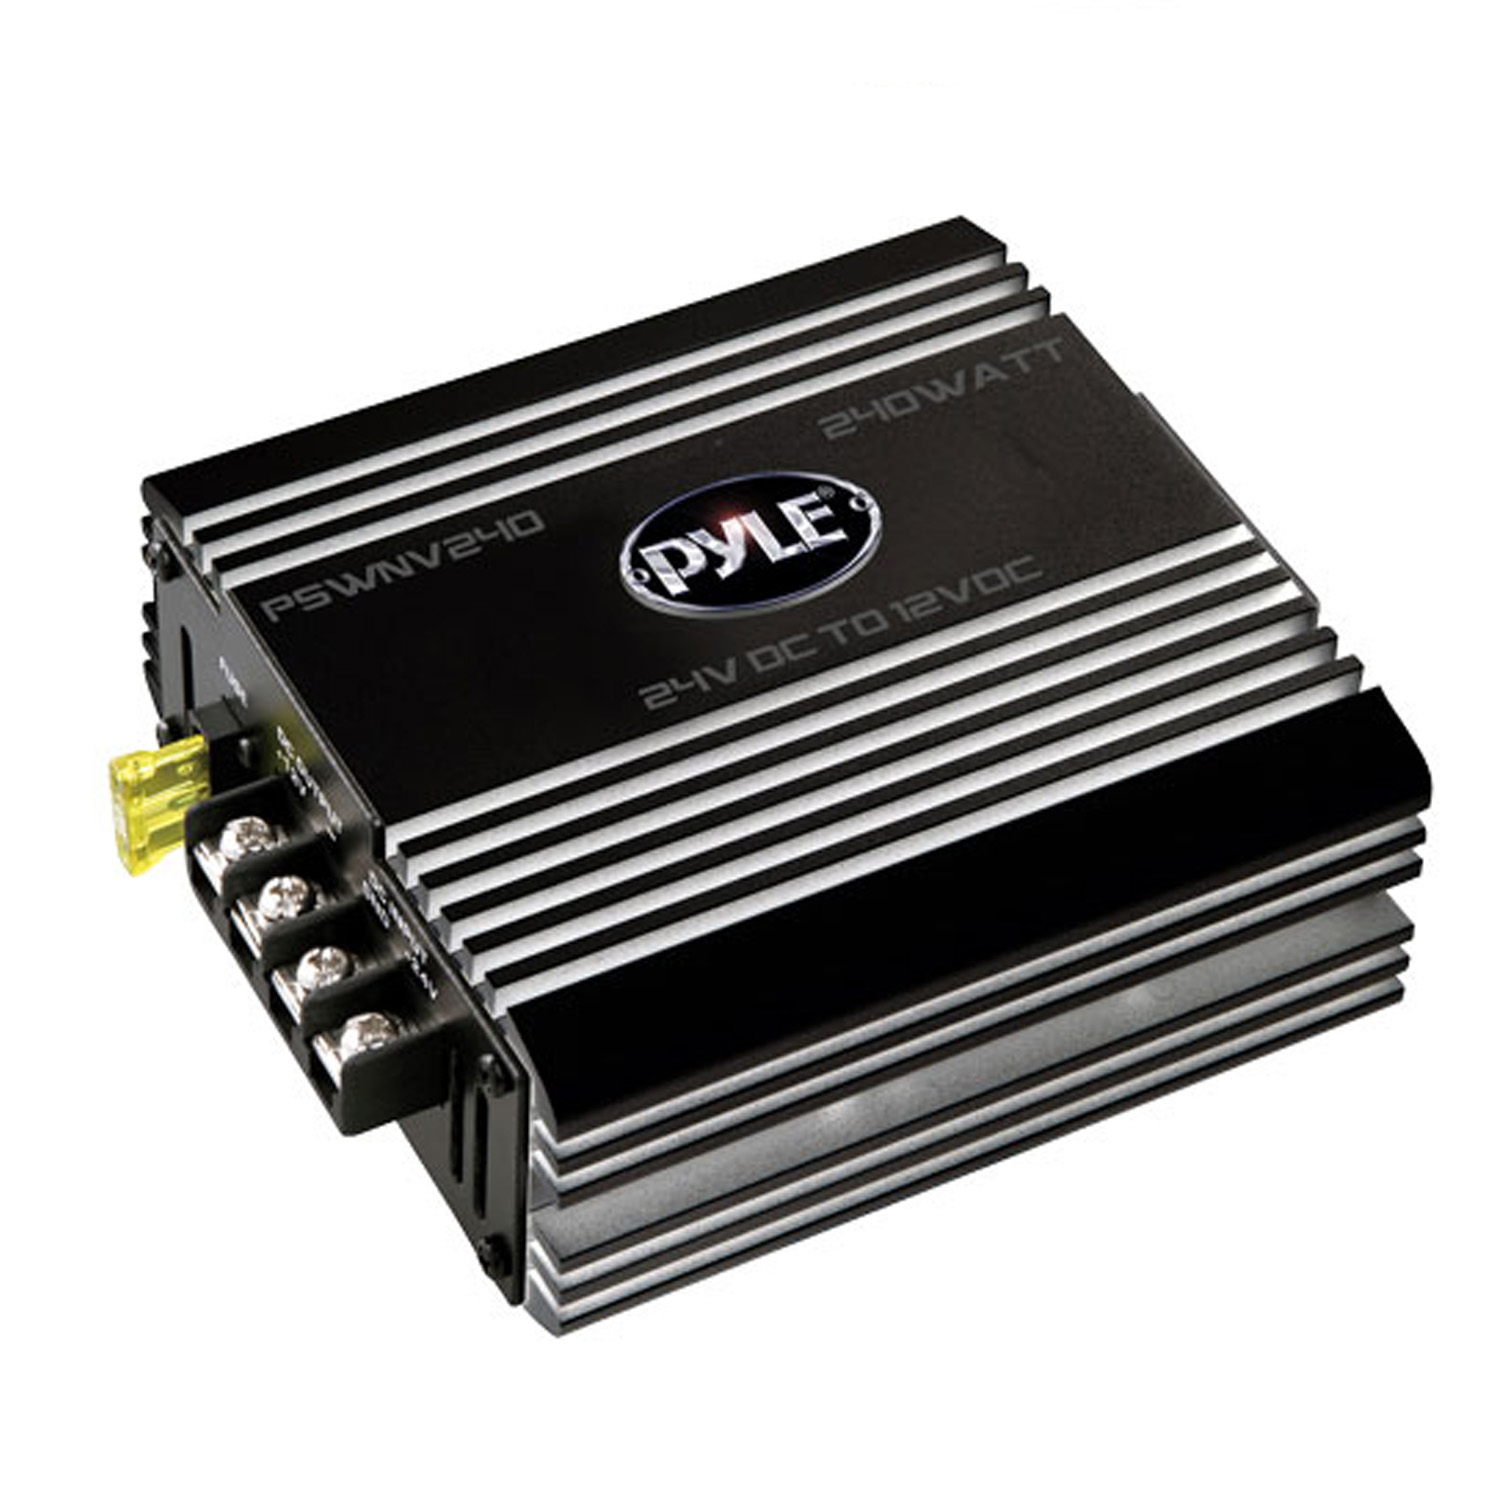 Pyle 24V DC to 12V DC Power Step Down 240 Watt Converter W/ PMW Technology